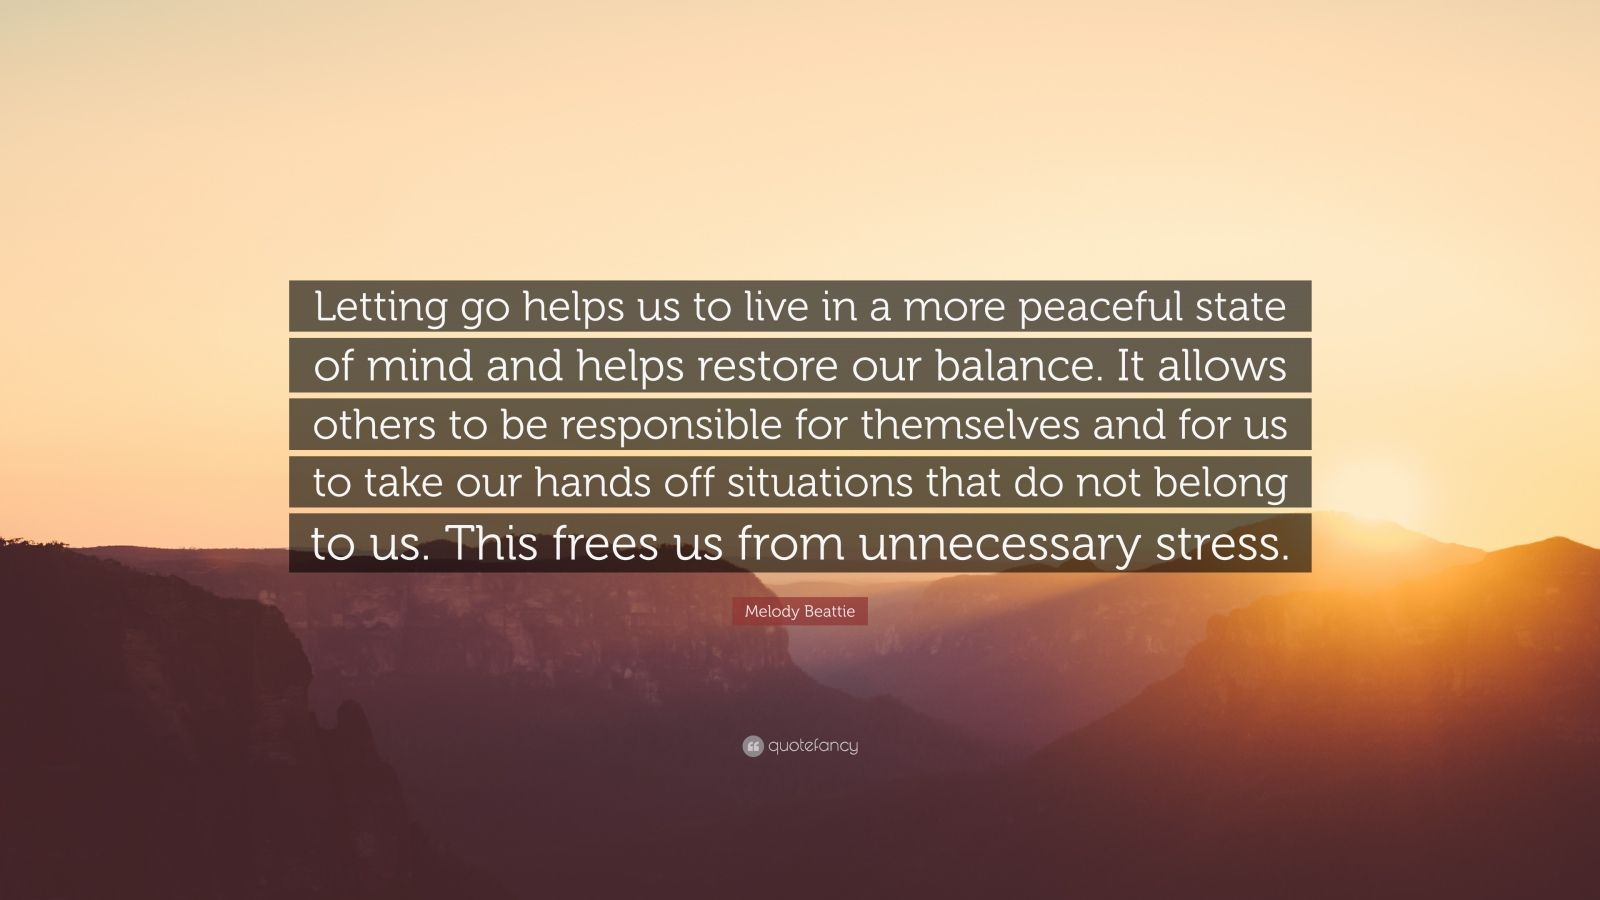 "Melody Beattie Quote: ""Letting go helps us to live in a more peaceful state of mind and helps restore our balance. It allows others to be responsible for themselves and for us to take our hands off situations that do not belong to us. This frees us from unnecessary stress."""